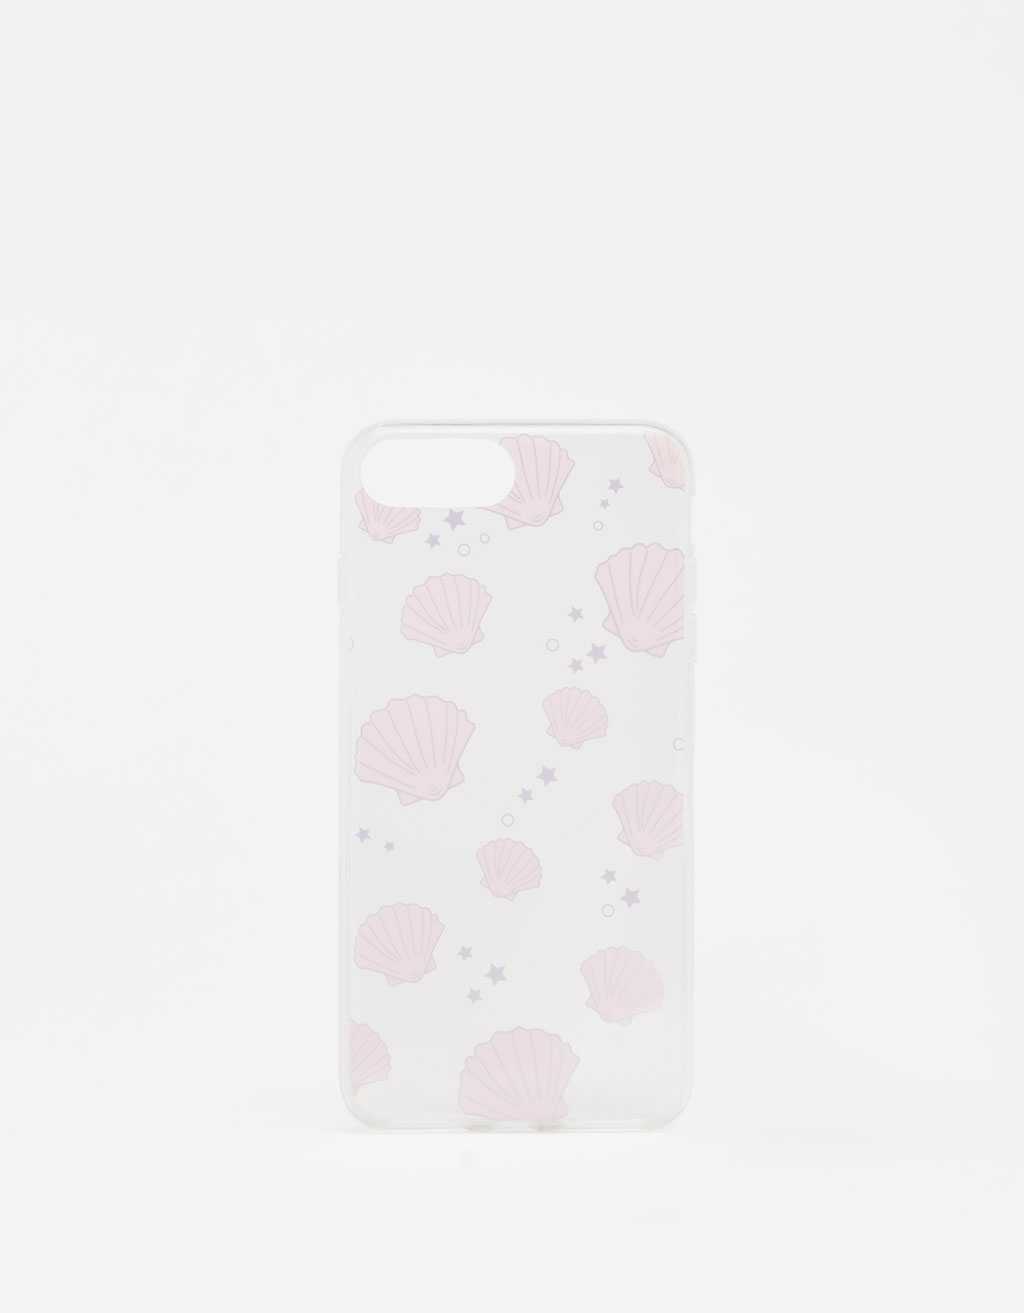 Carcasa conchas iPhone 6 plus / 7 plus / 8 plus